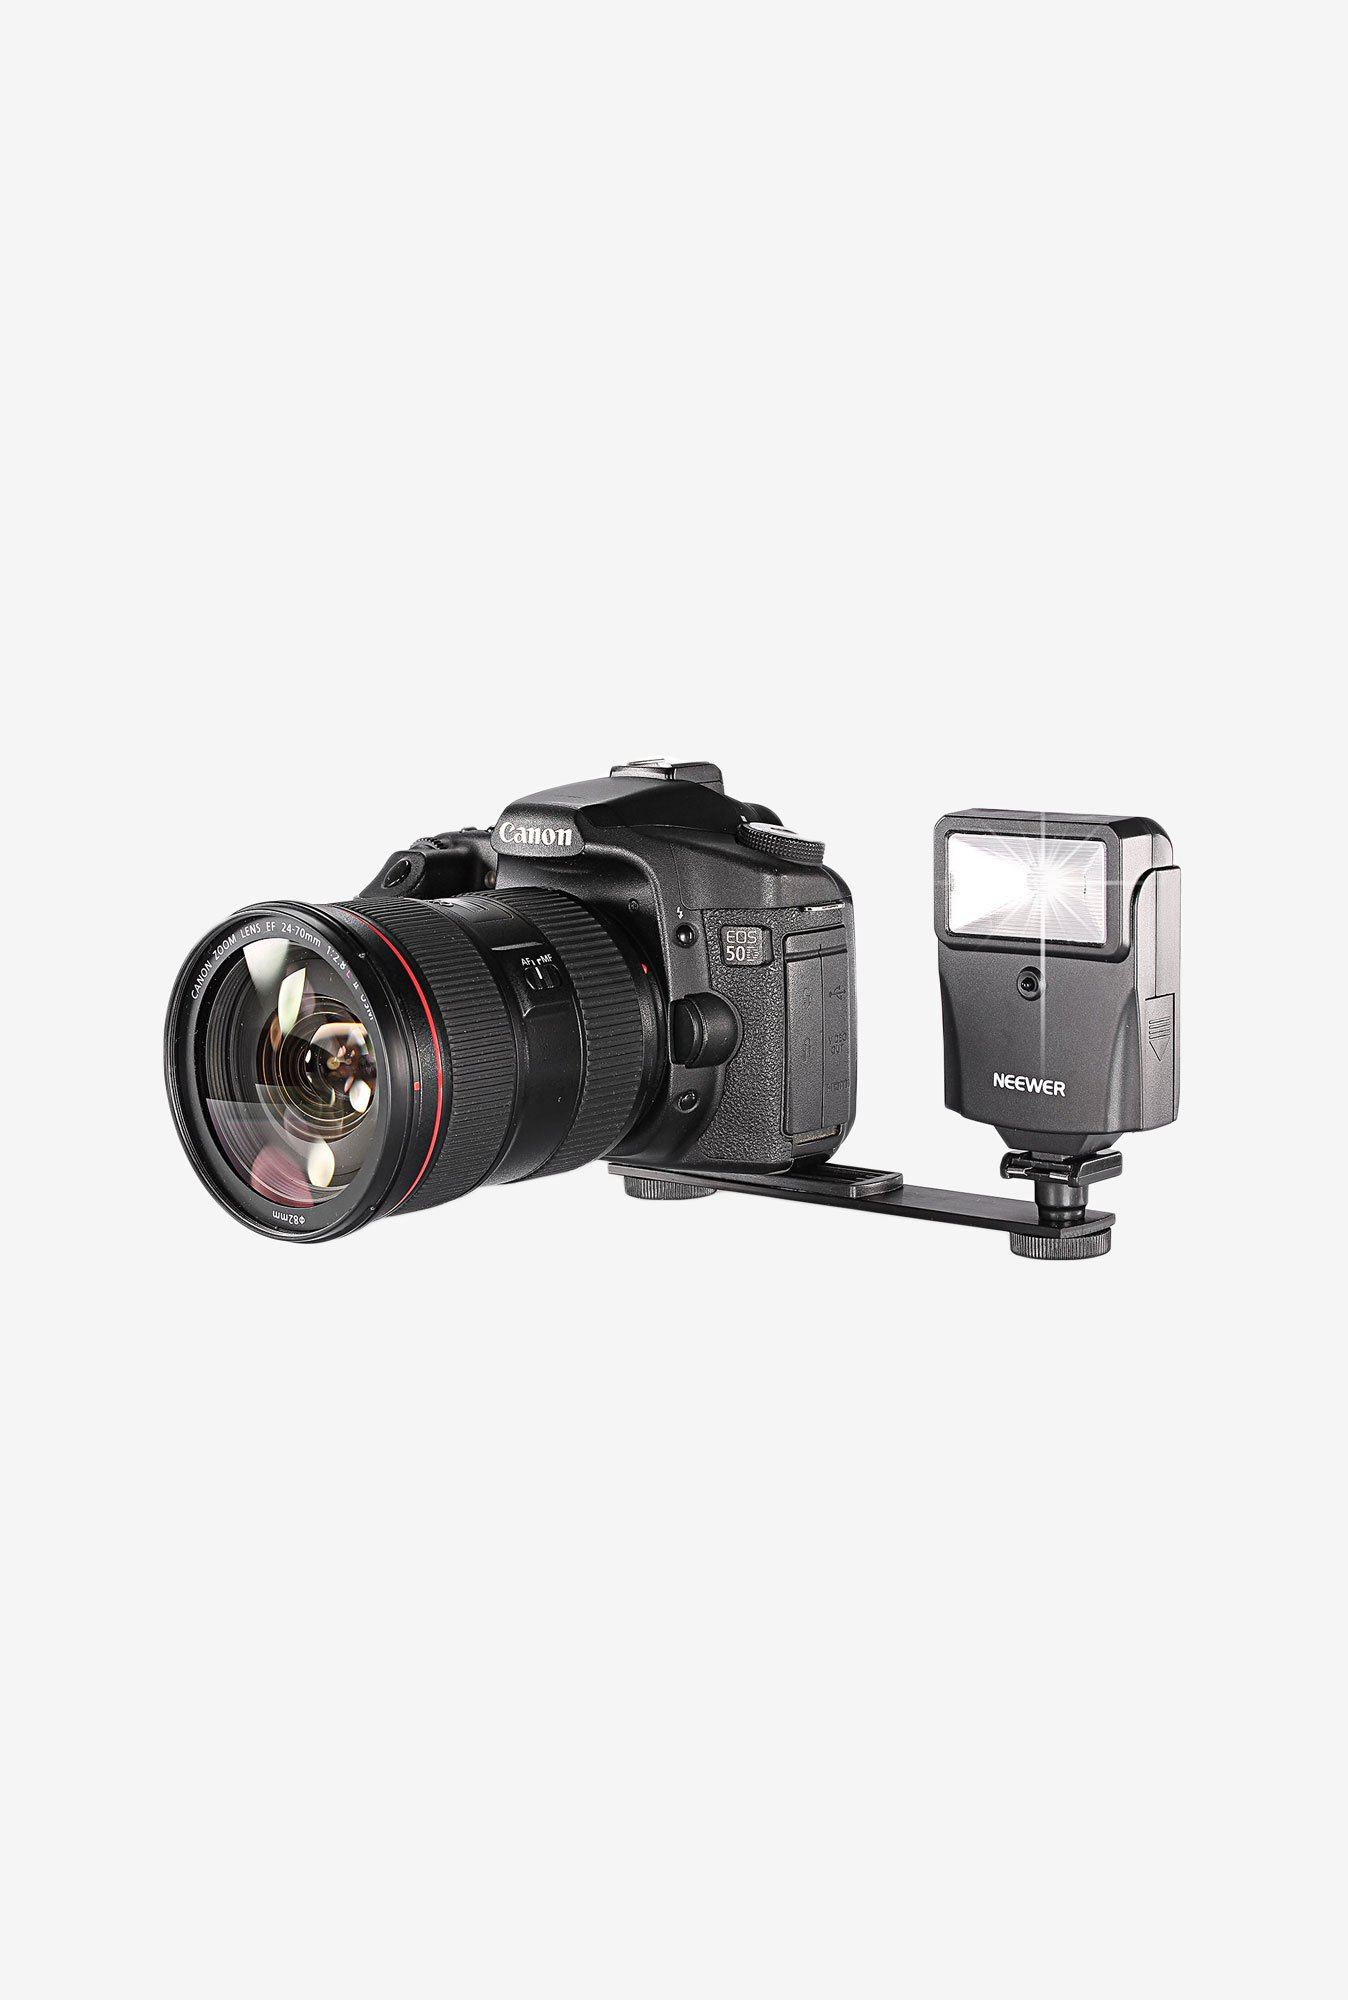 Neewer Professional Digital Flash Slave Cf-18